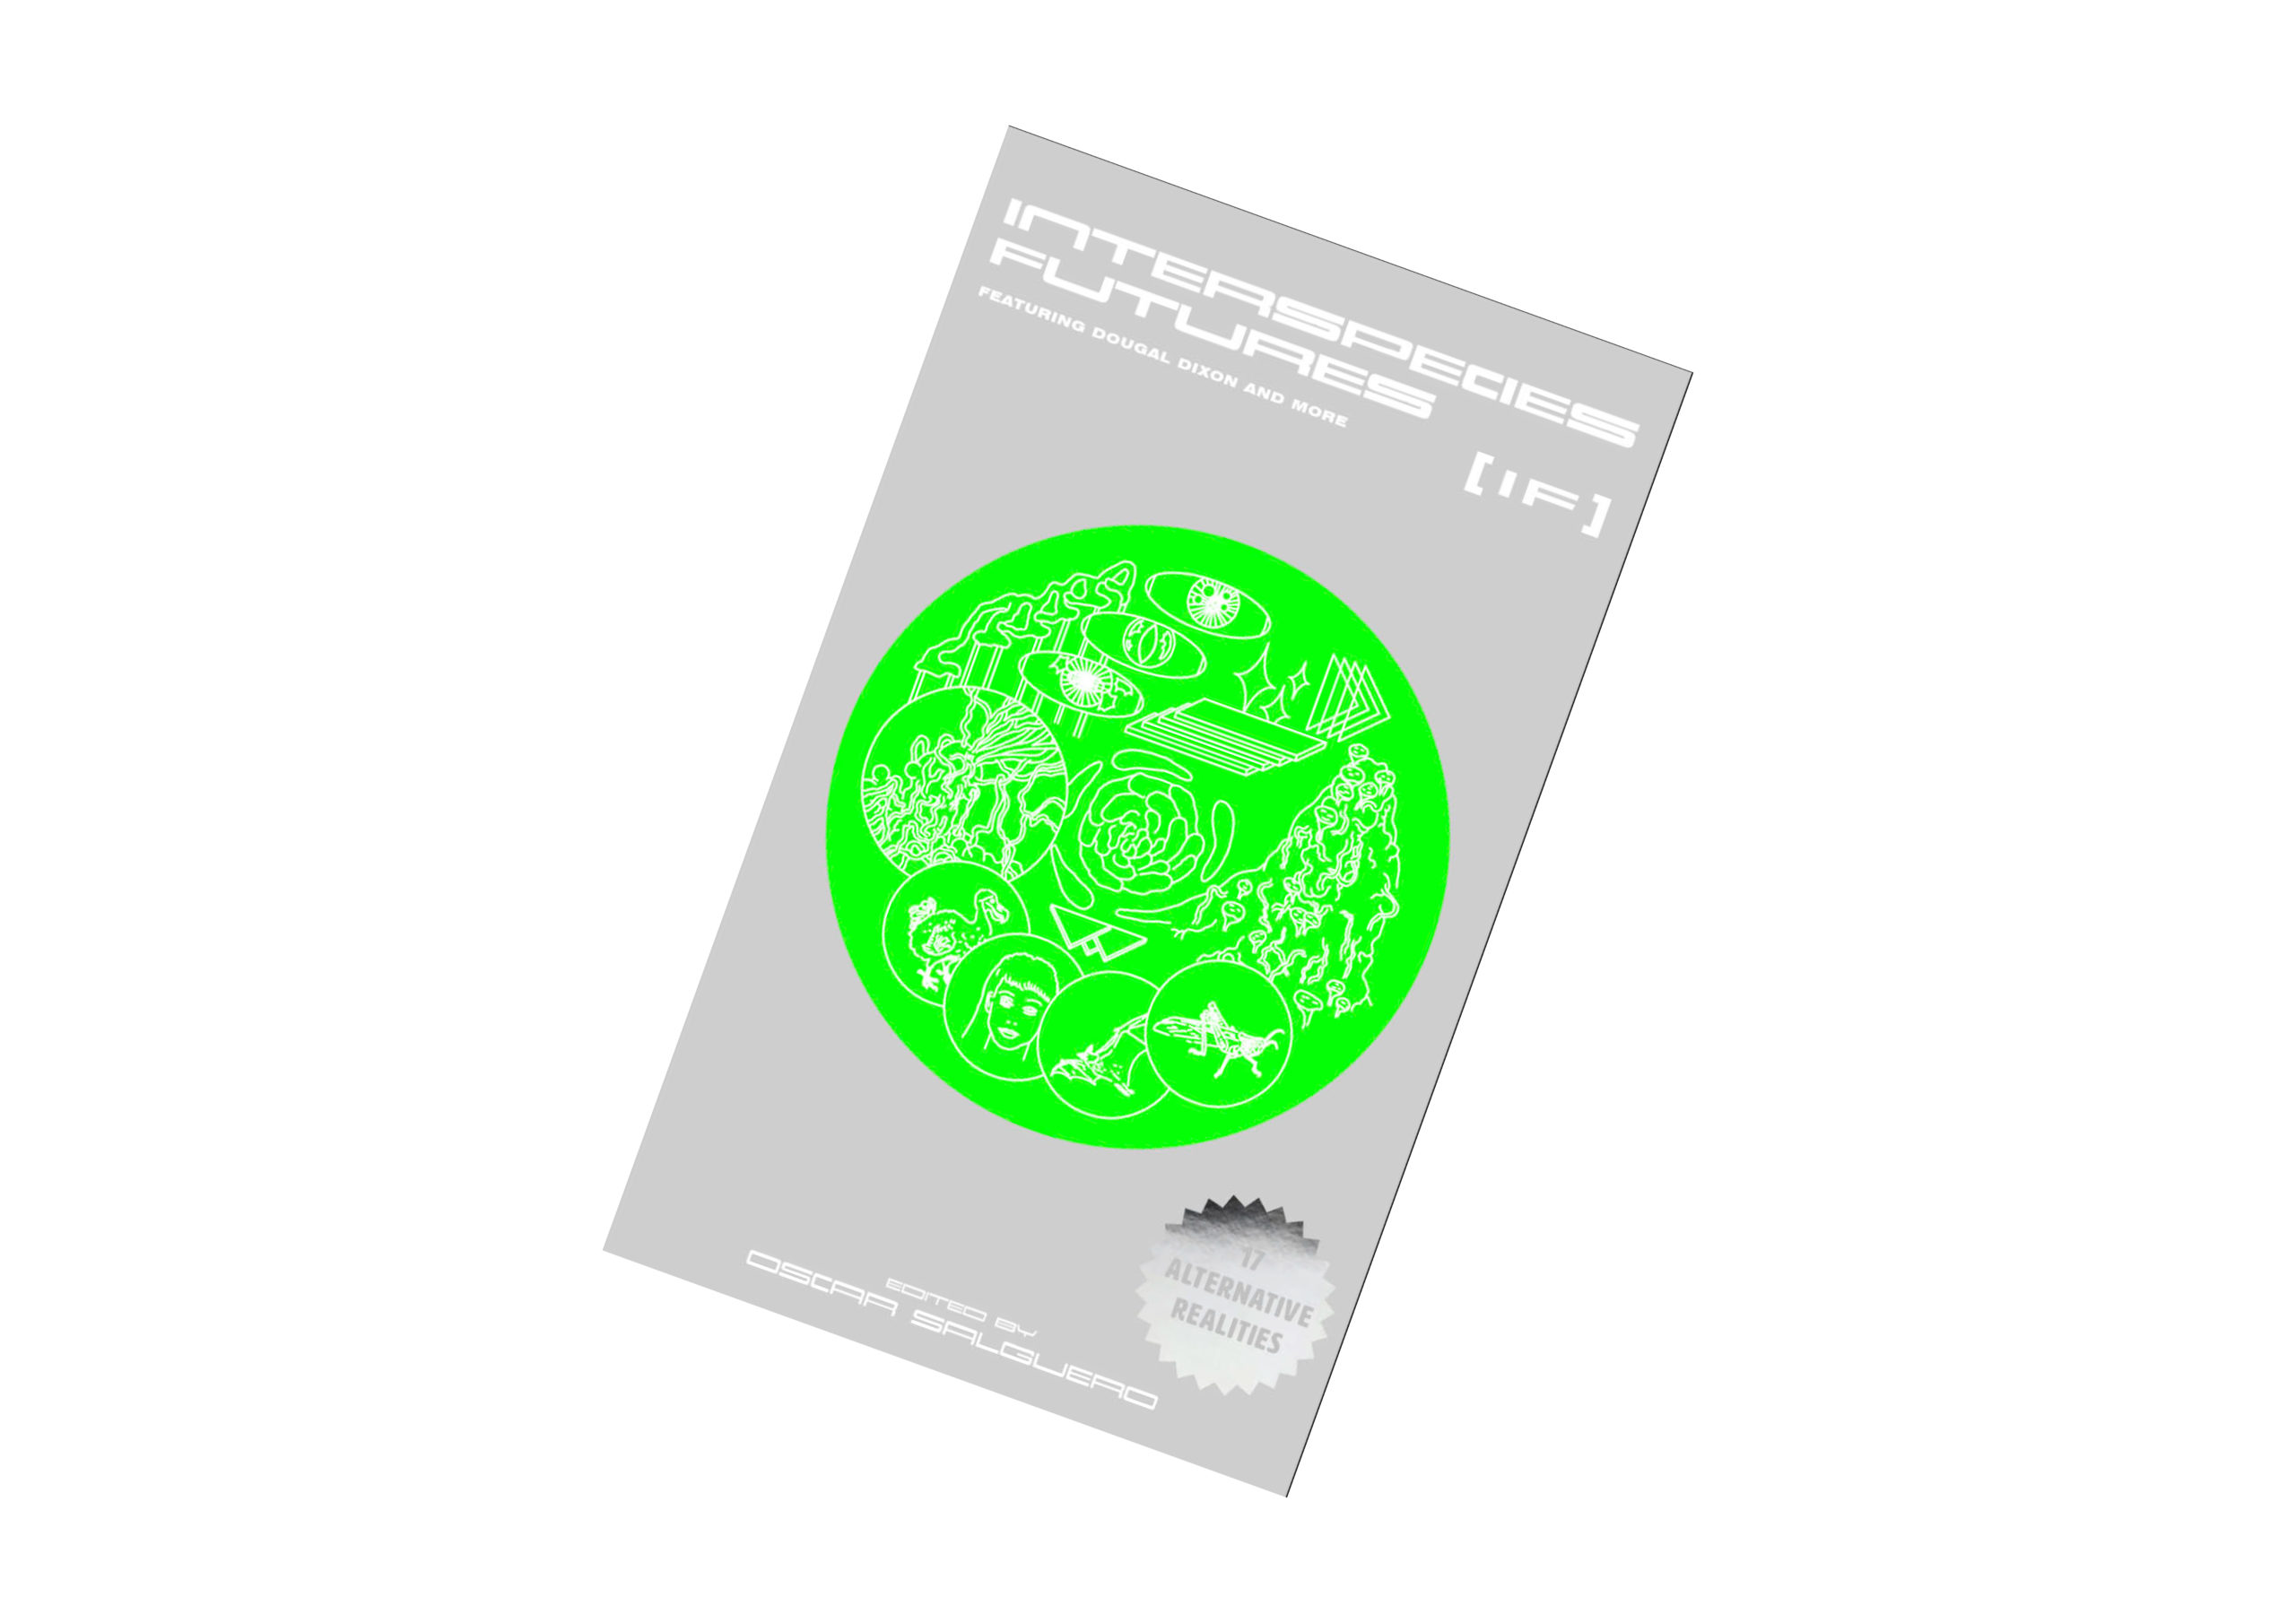 Interspecies Futures Catalog: a digital rendering of a grey book with sci-fi typography, and a green decal at the center with illustrations of speculative biological drawings